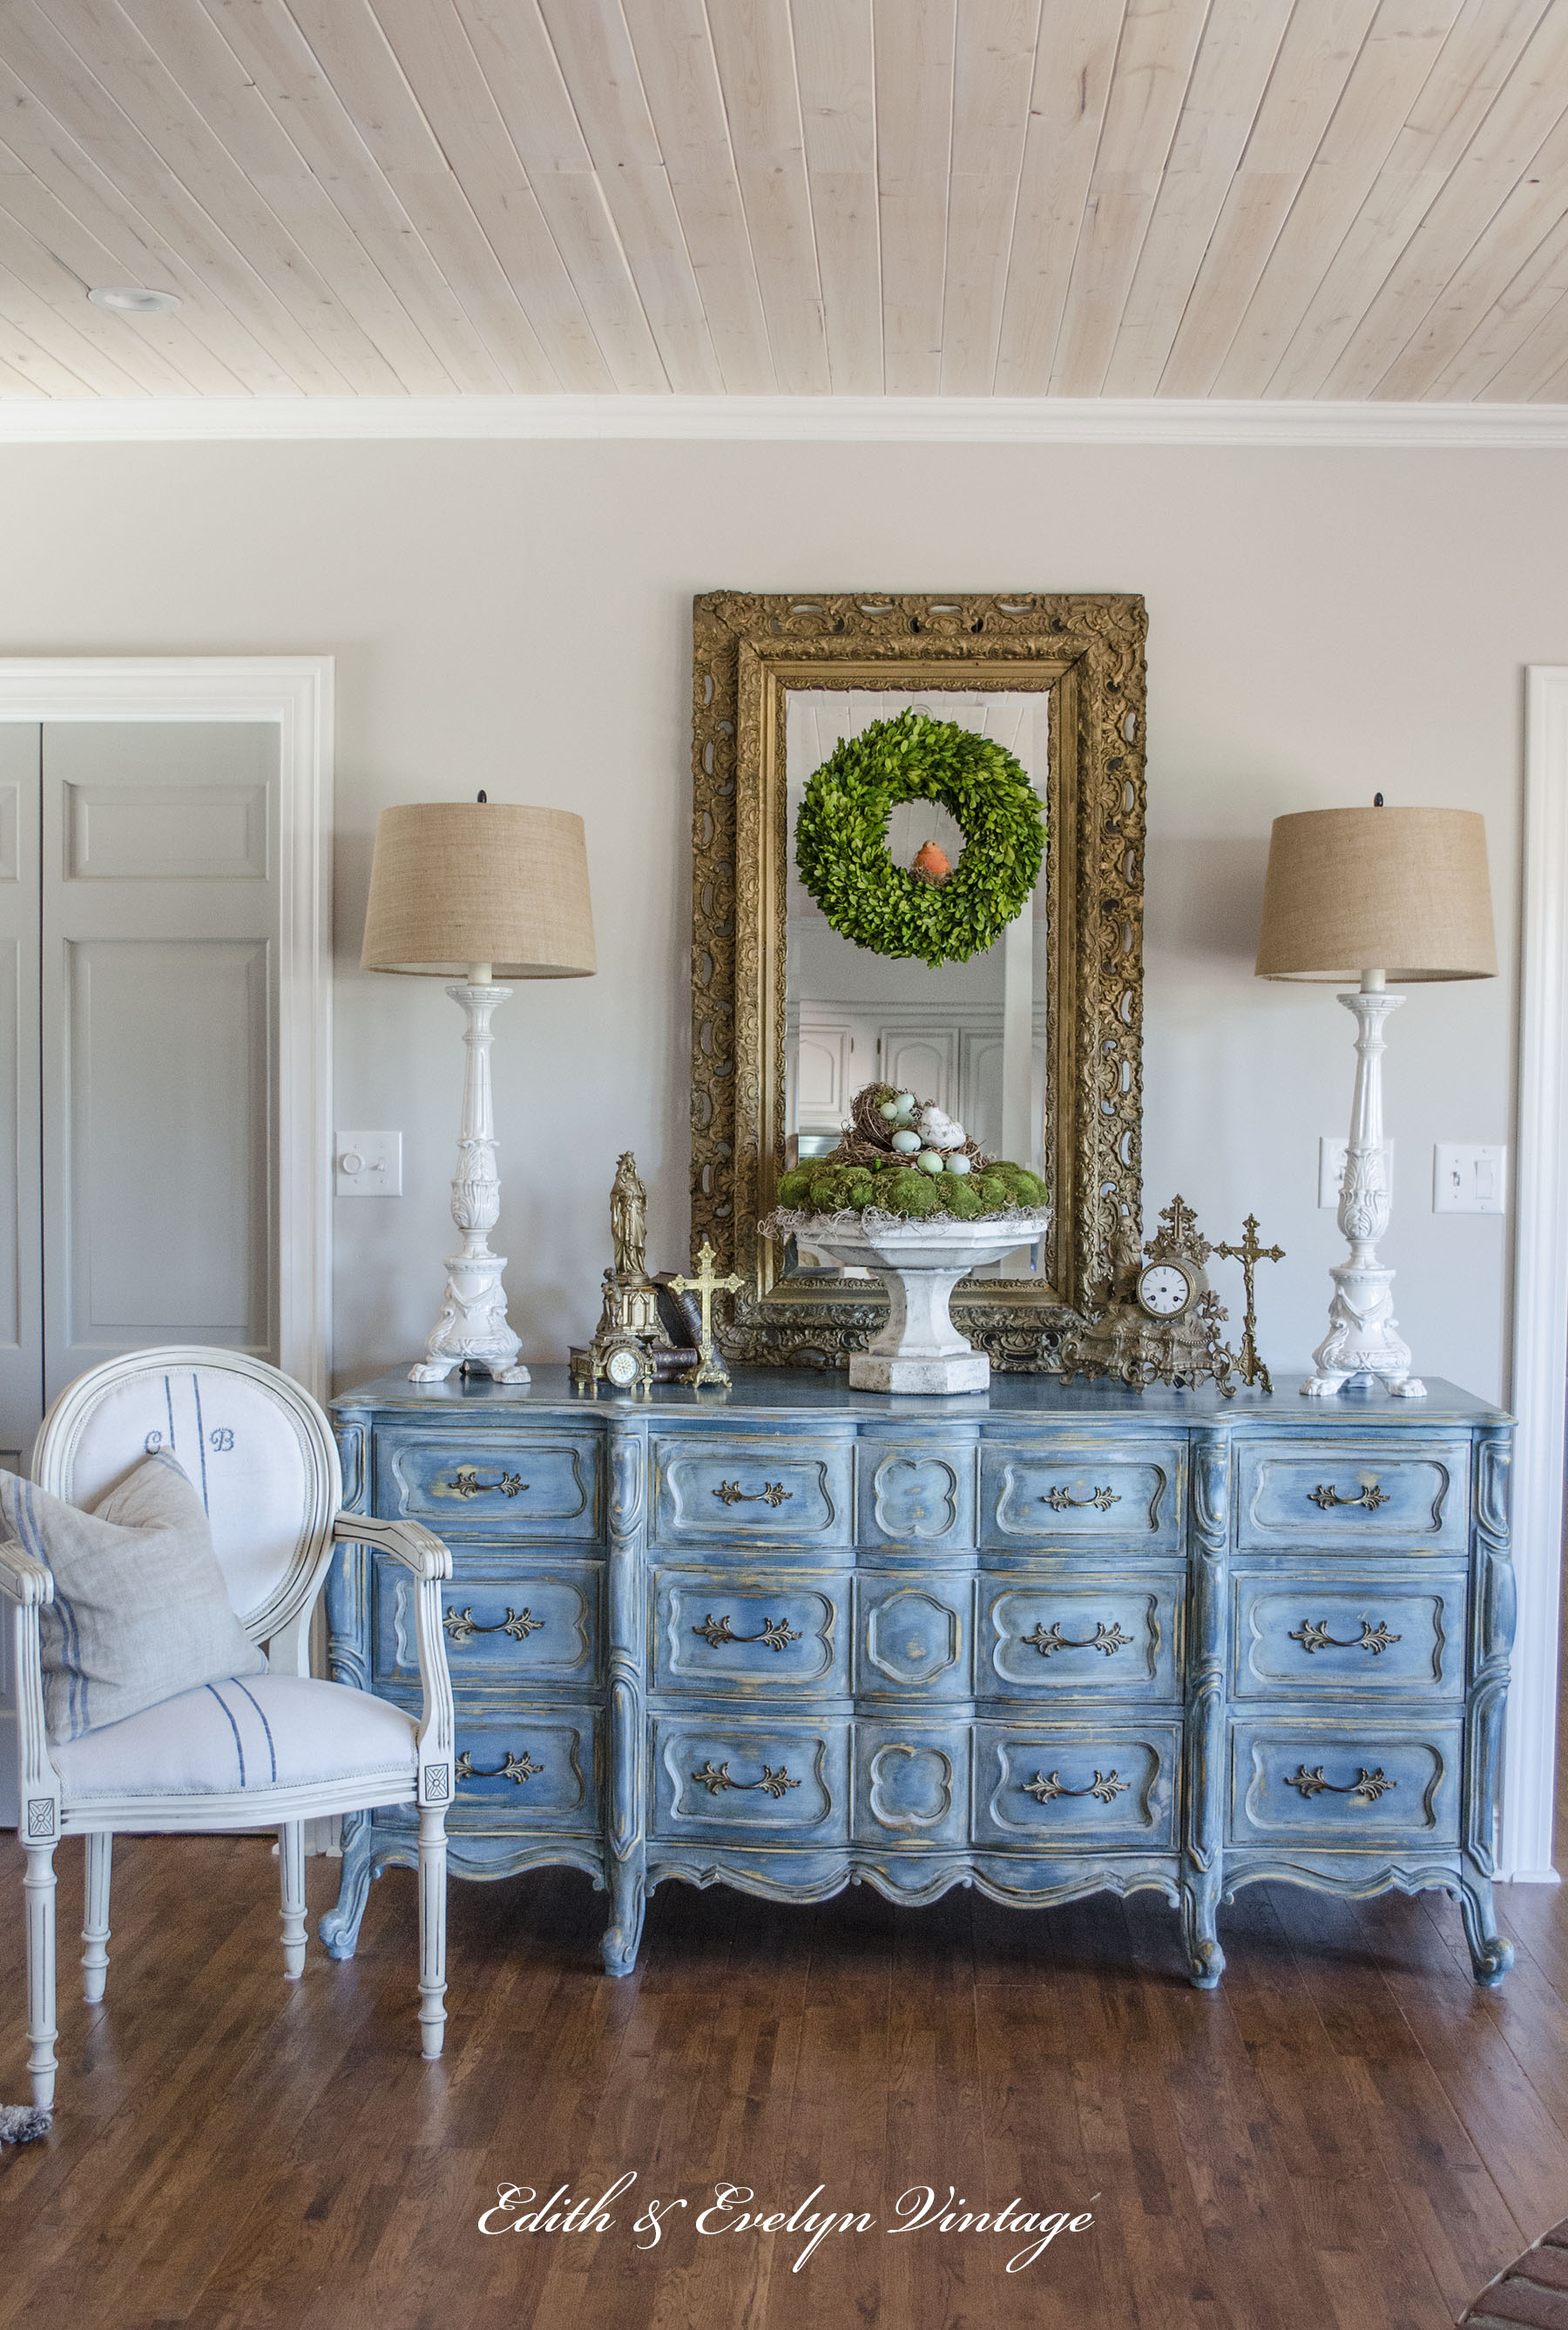 How to Paint a Faux Finish - Cedar Hill Farmhouse